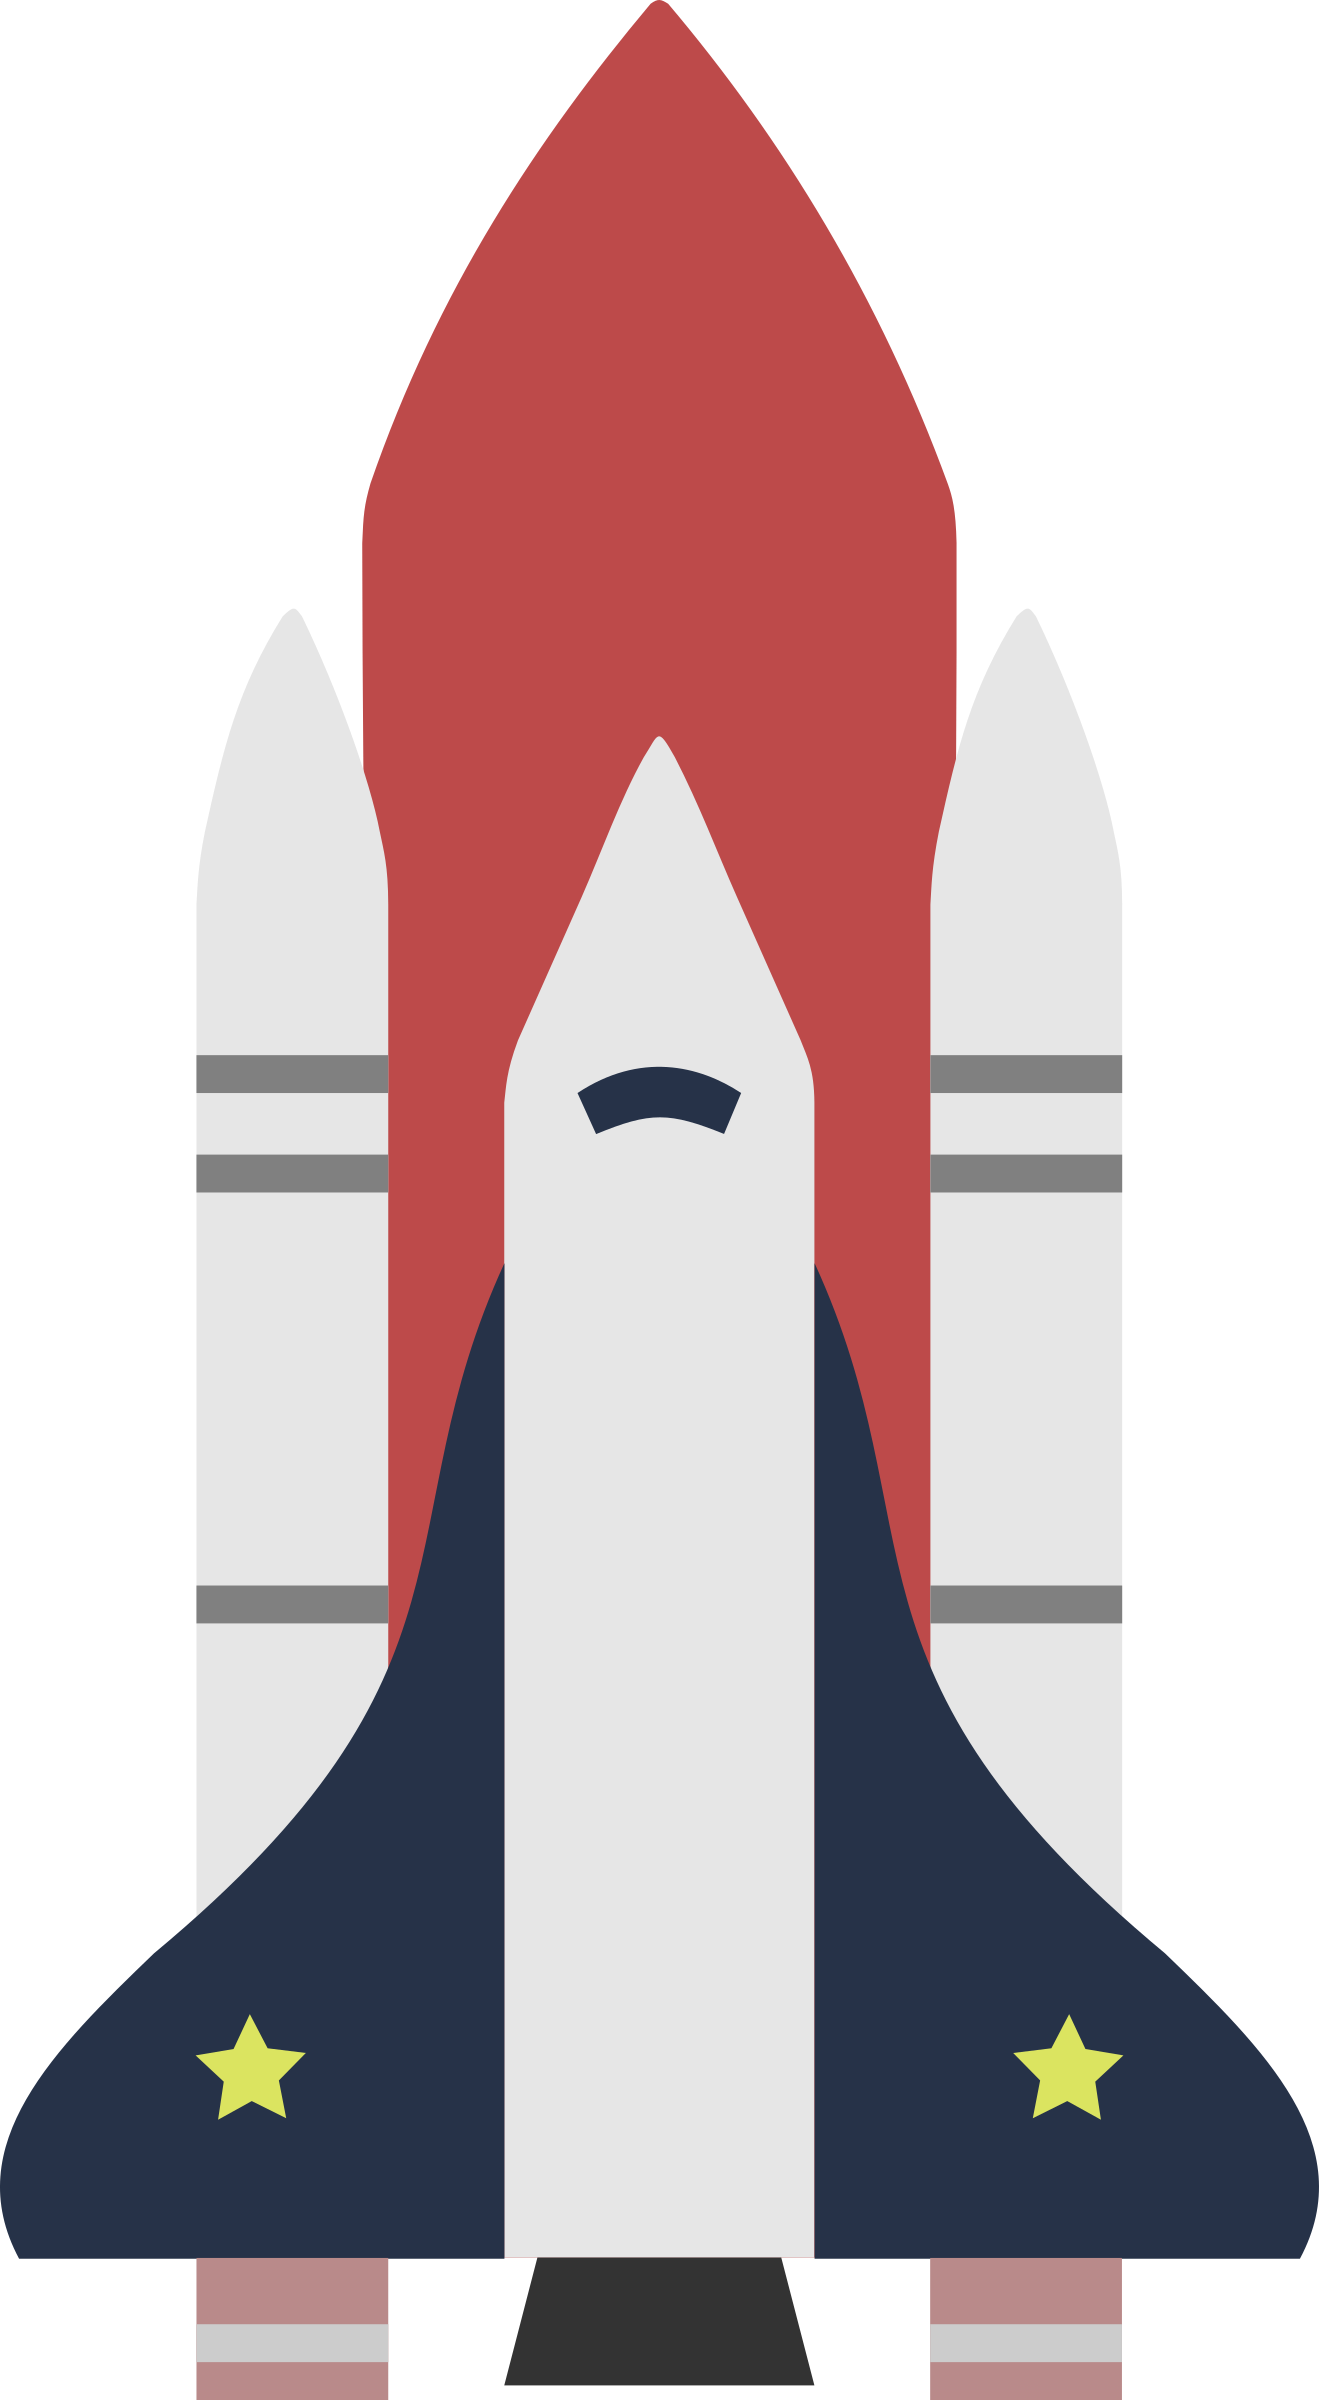 Planet clipart space stuff. Shuttle big image png